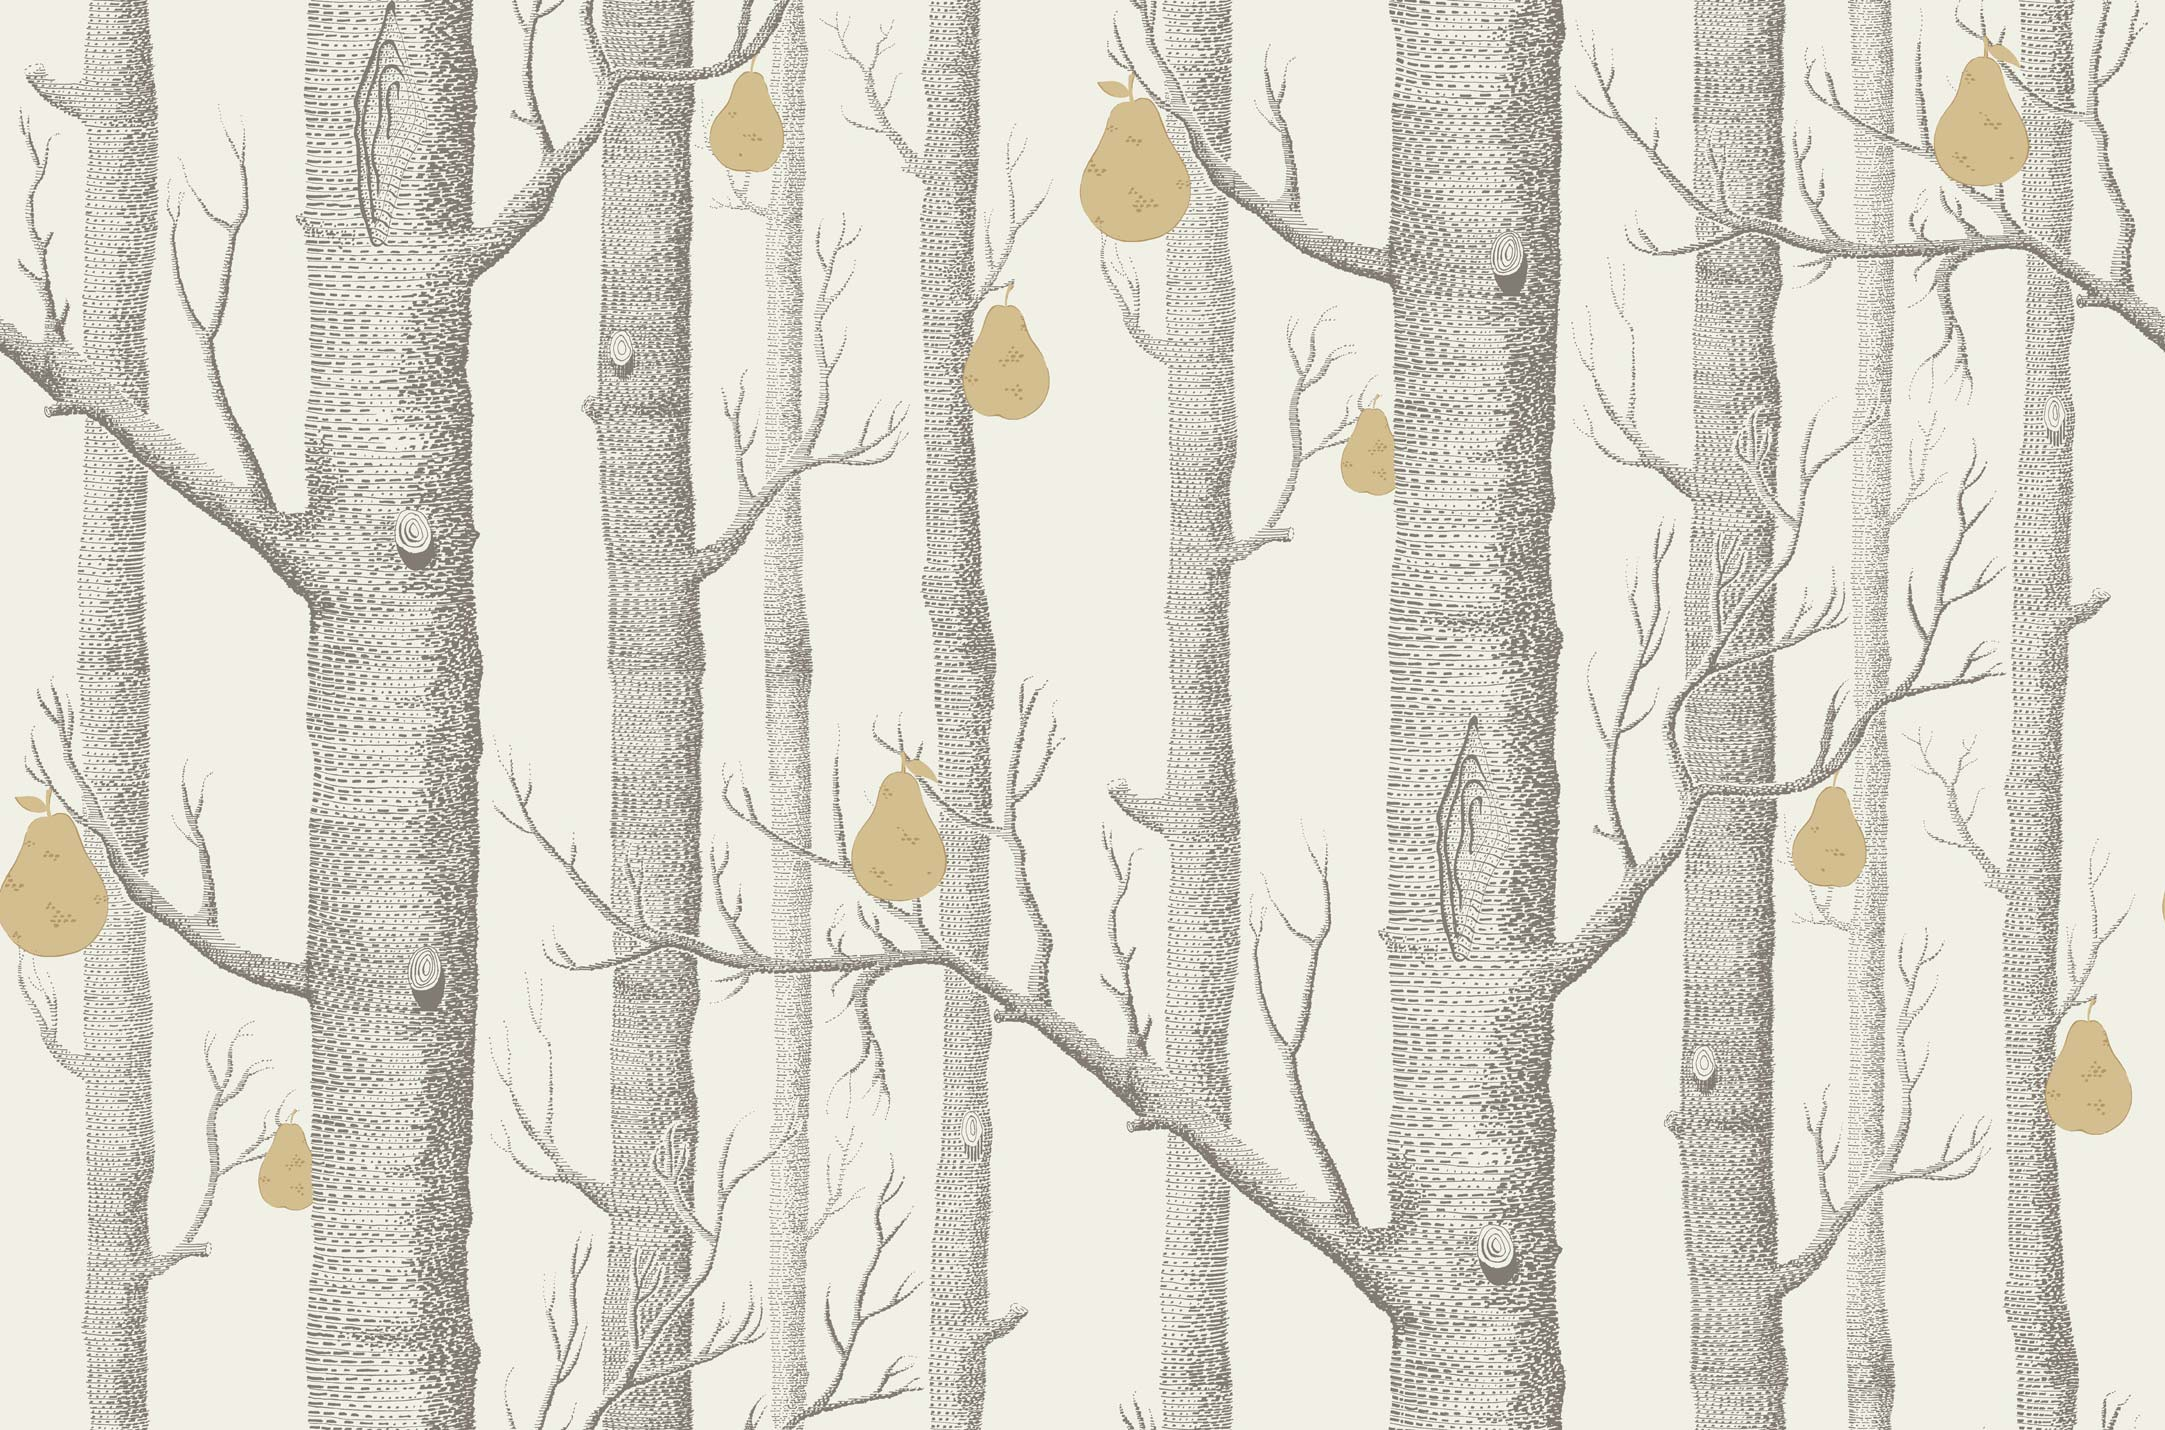 Woods Pears 95-5032 wallpaper Cole Son Contemporary Restyled